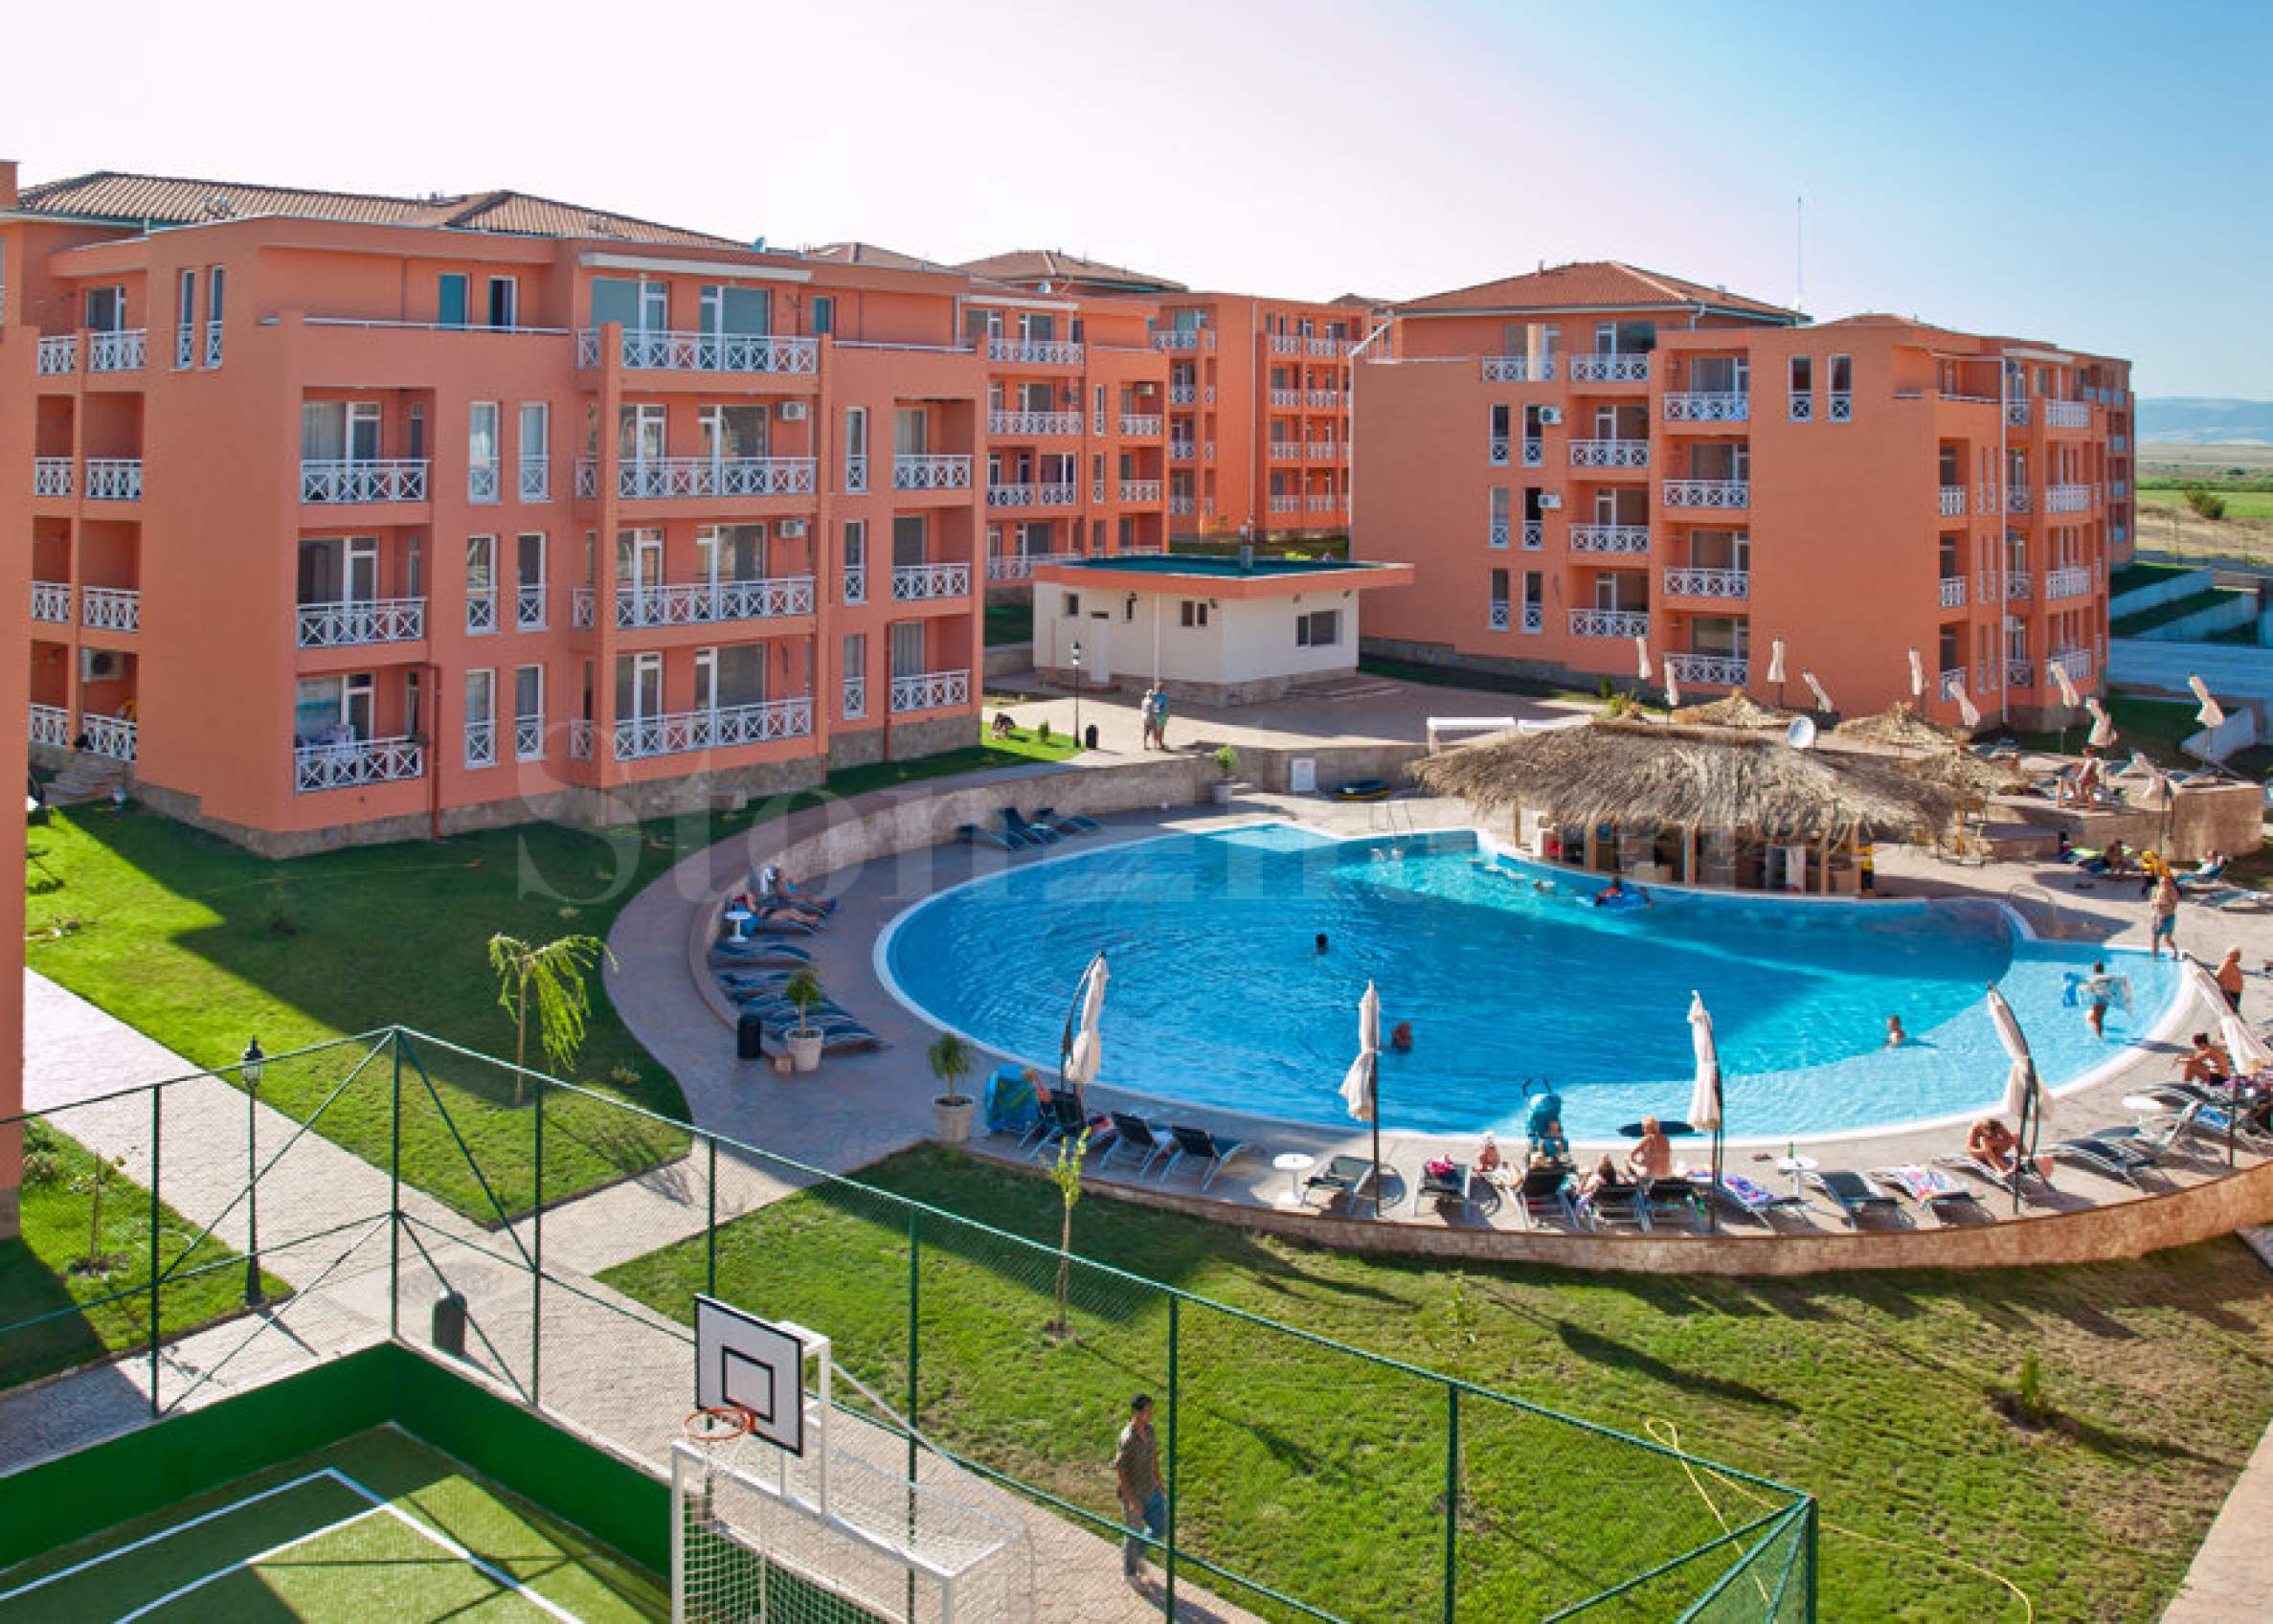 Apartments at attractive prices near popular beach resort1 - Stonehard